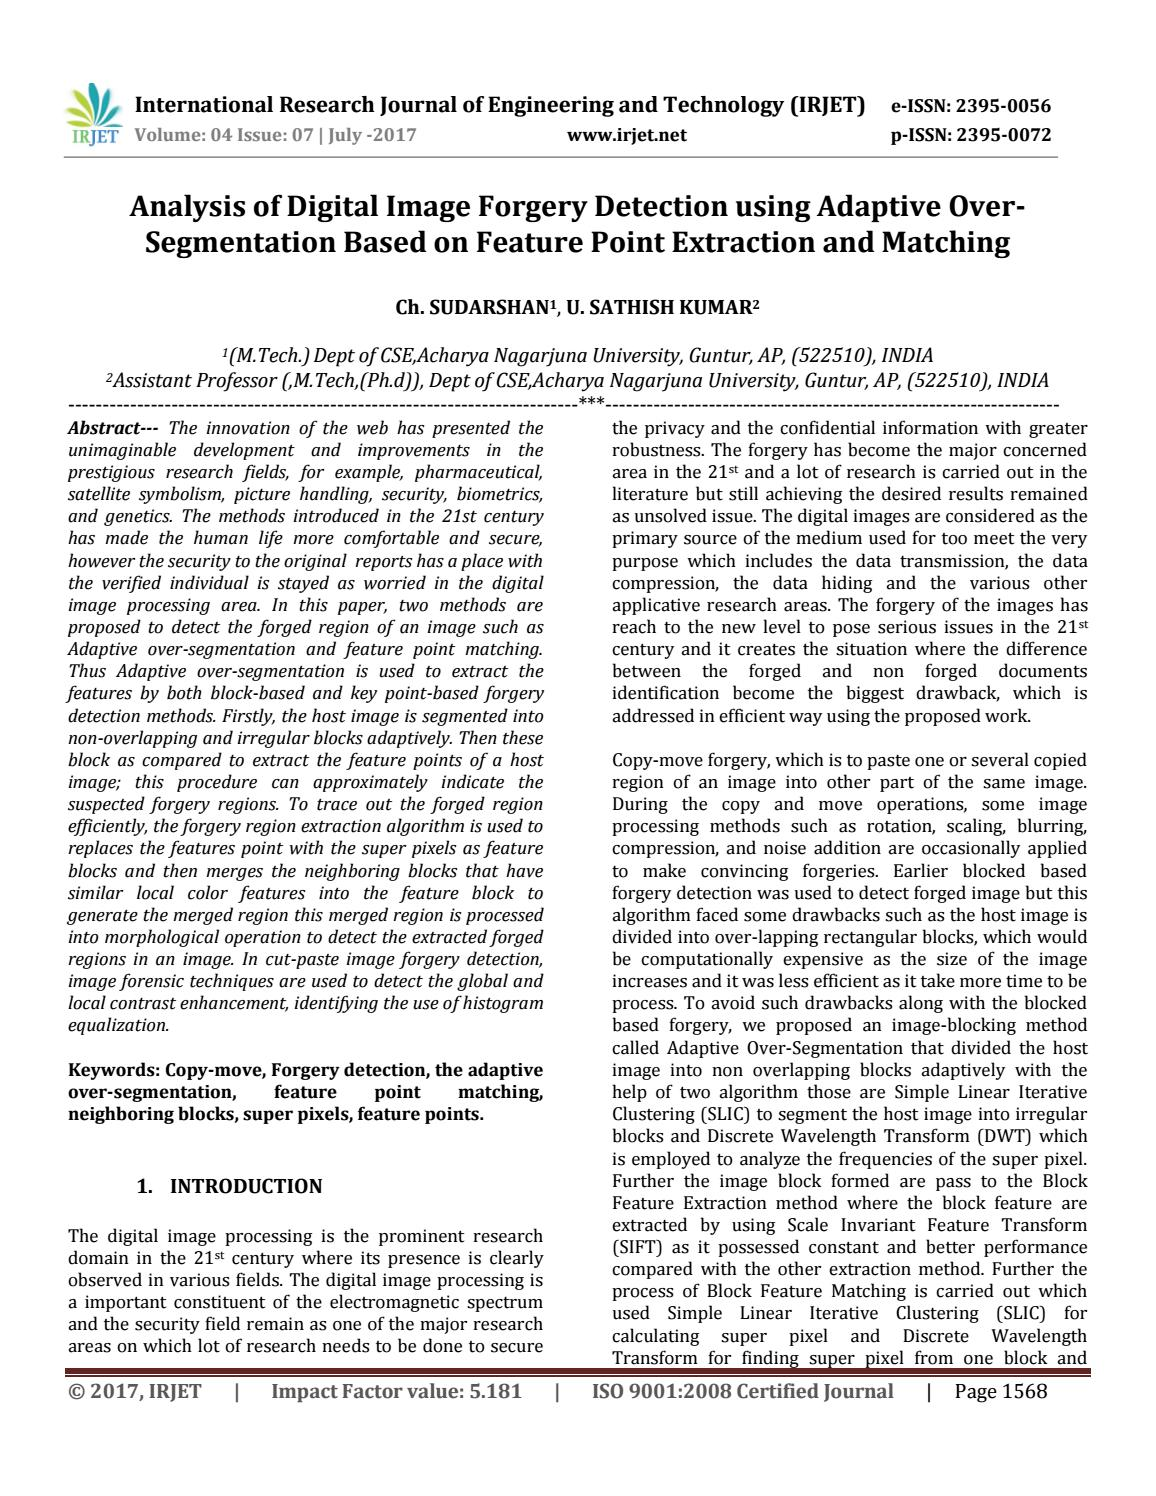 Analysis of Digital Image Forgery Detection using Adaptive  Over-Segmentation Based on Feature Point